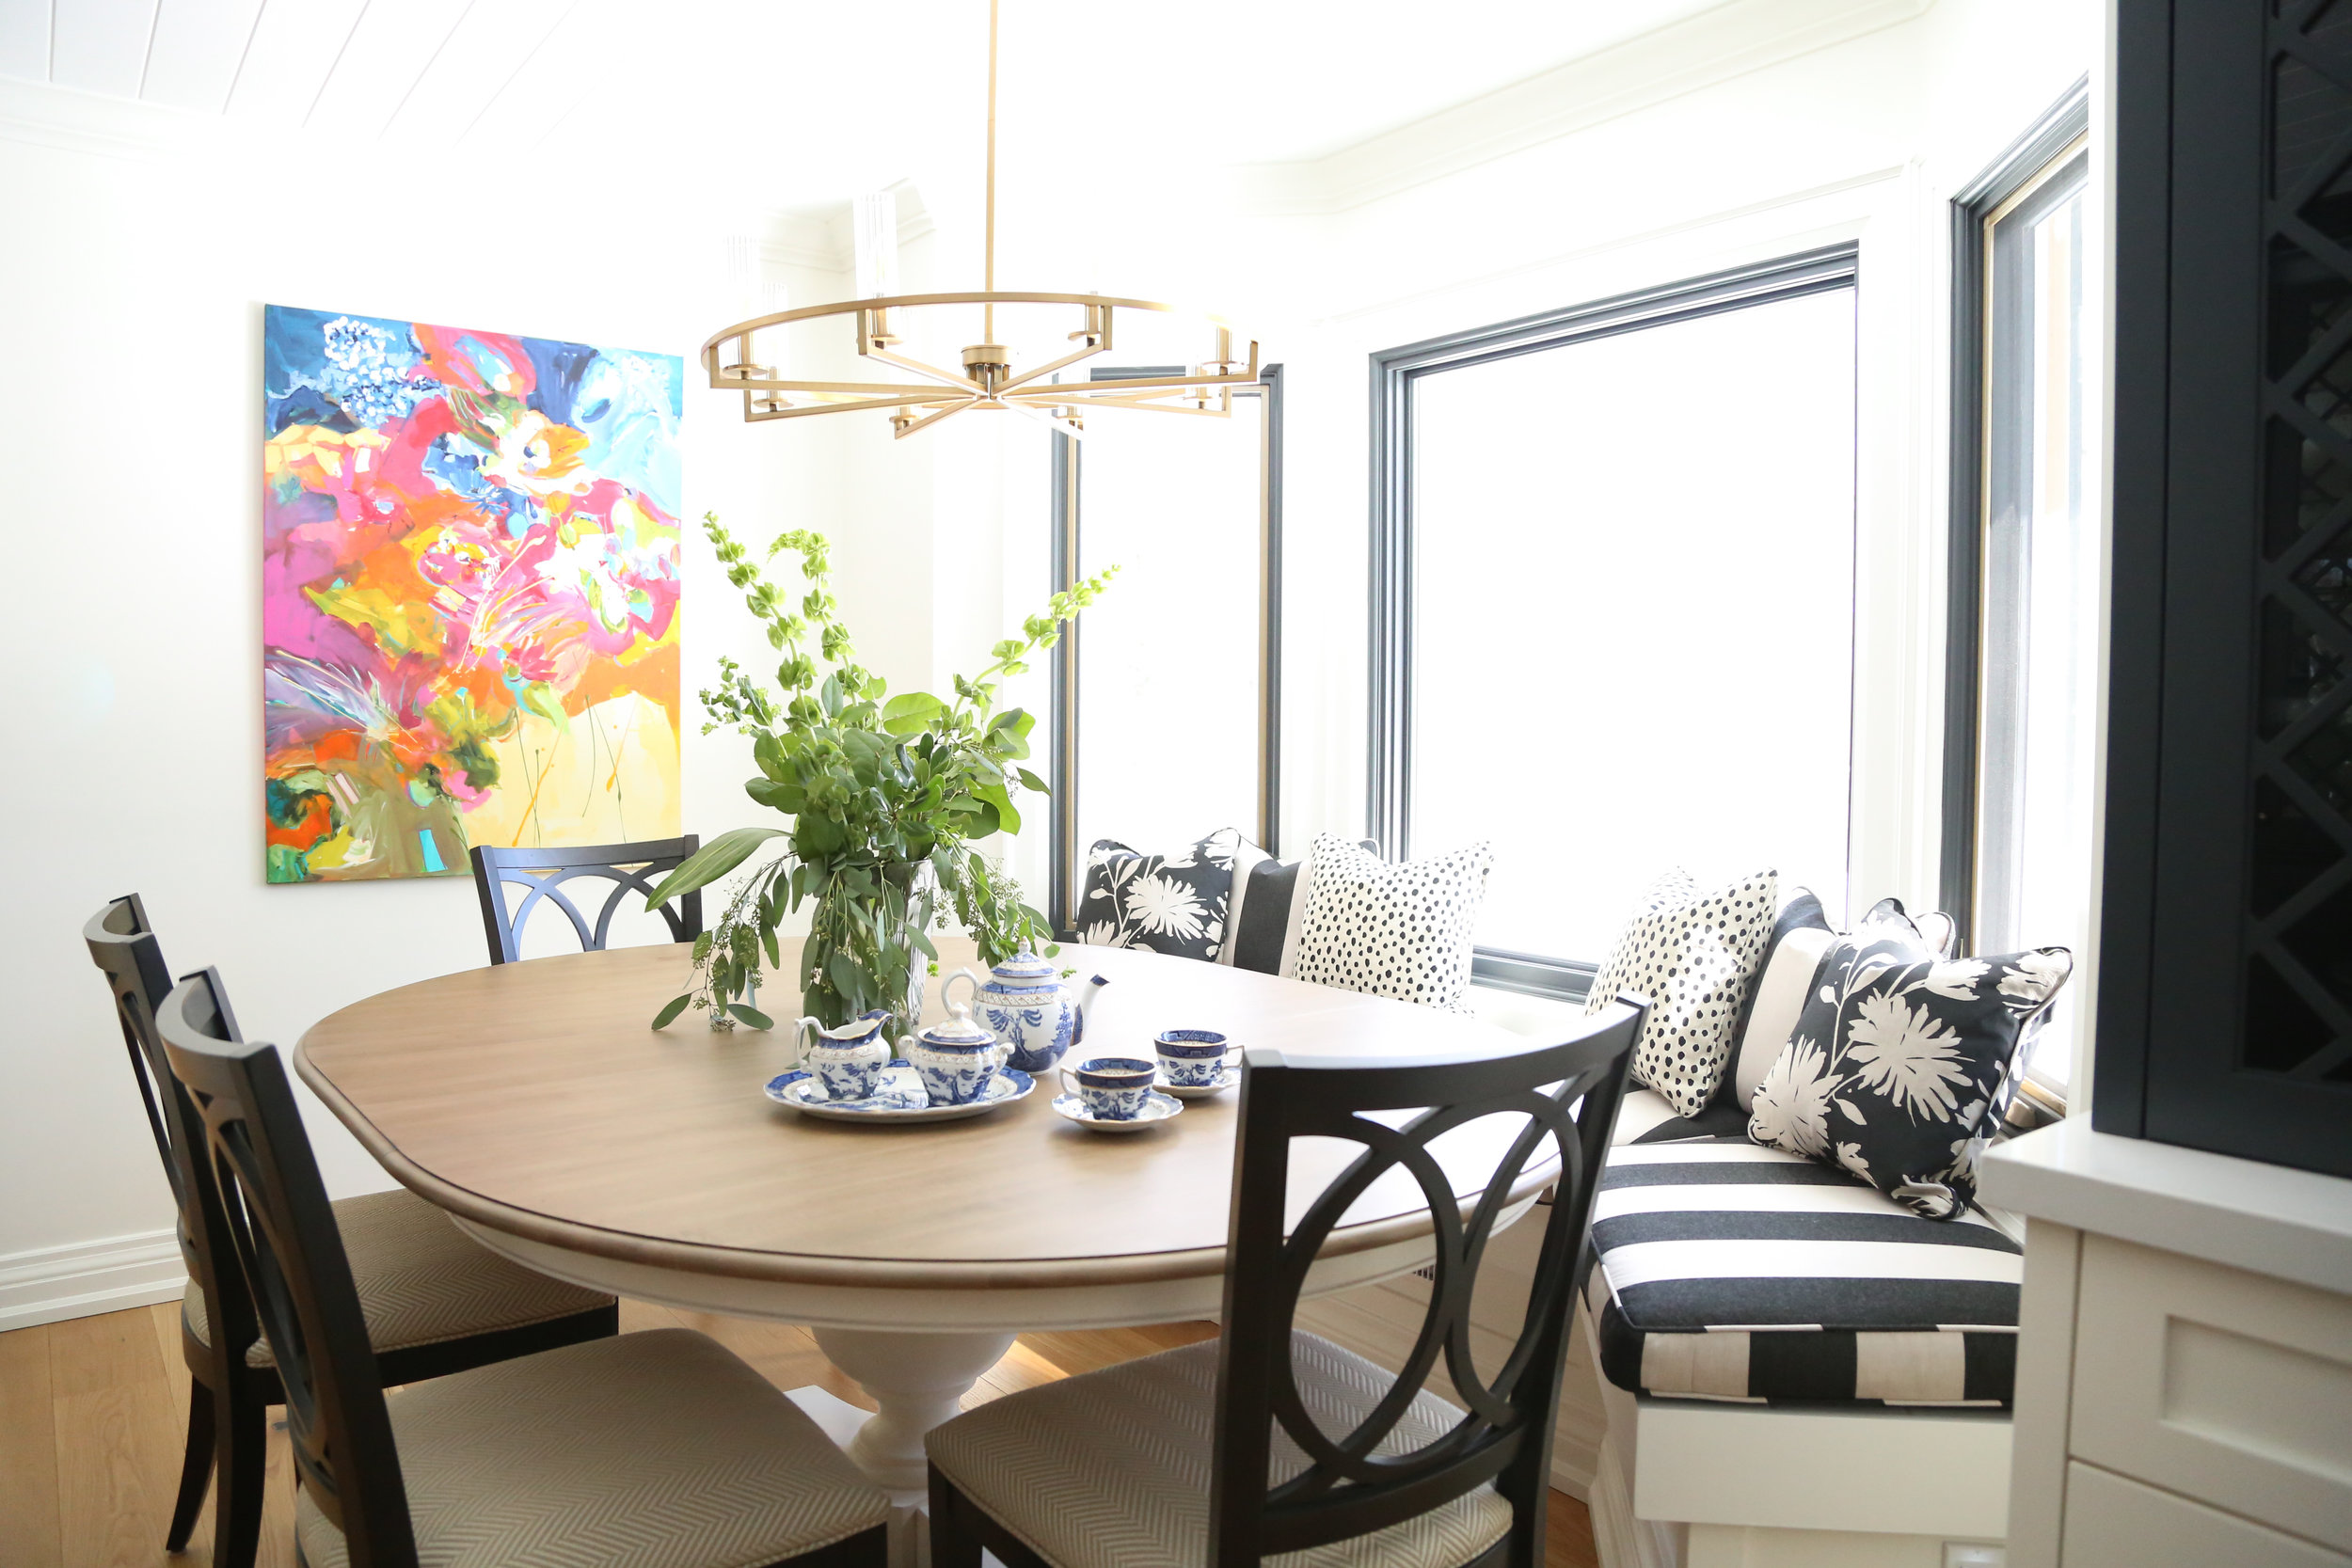 Dining area of Burnside Cottage kitchen renovation. Courtesy of Kelly Tomlinson Photography.